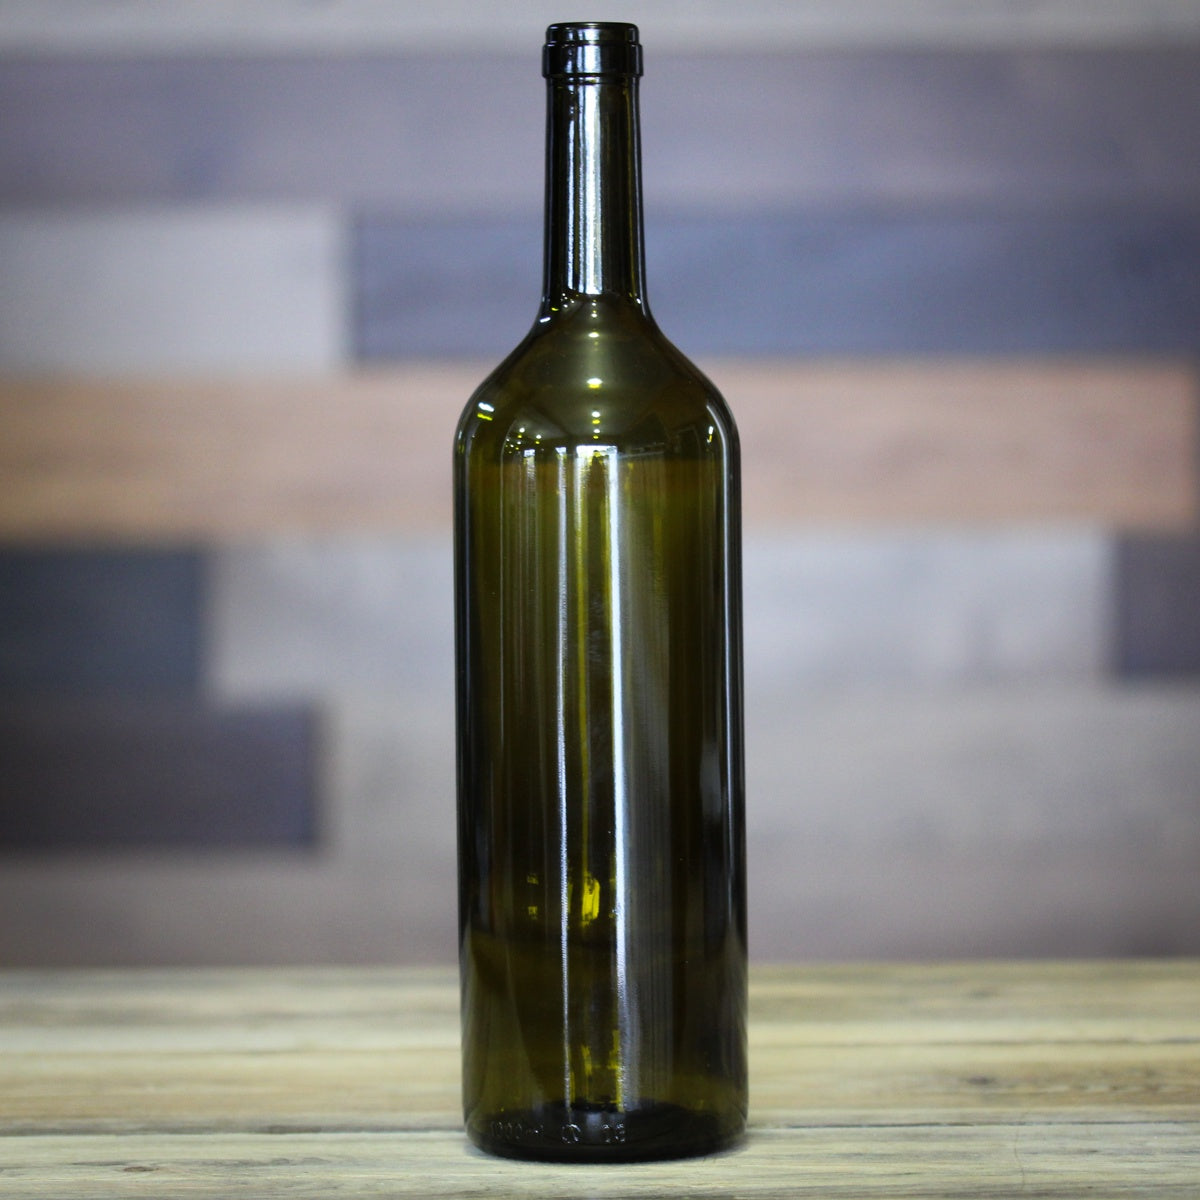 1L Bordeaux Wine Bottles - Green